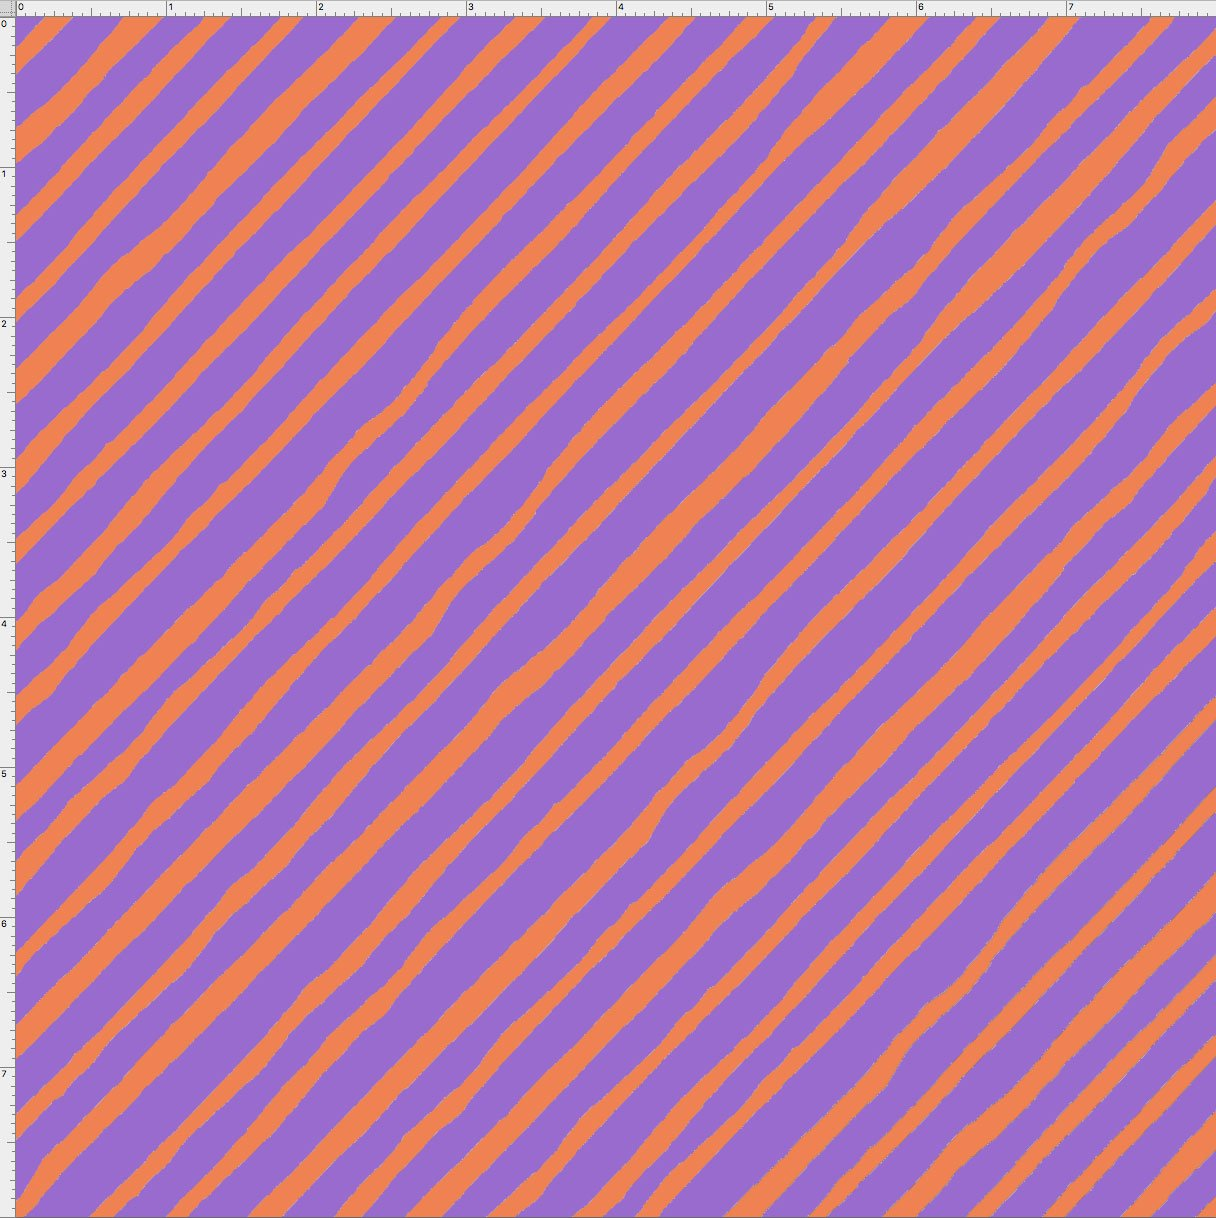 【Loralie Designs】 - Bias Stripe Purple / Orange - (ULH-137)